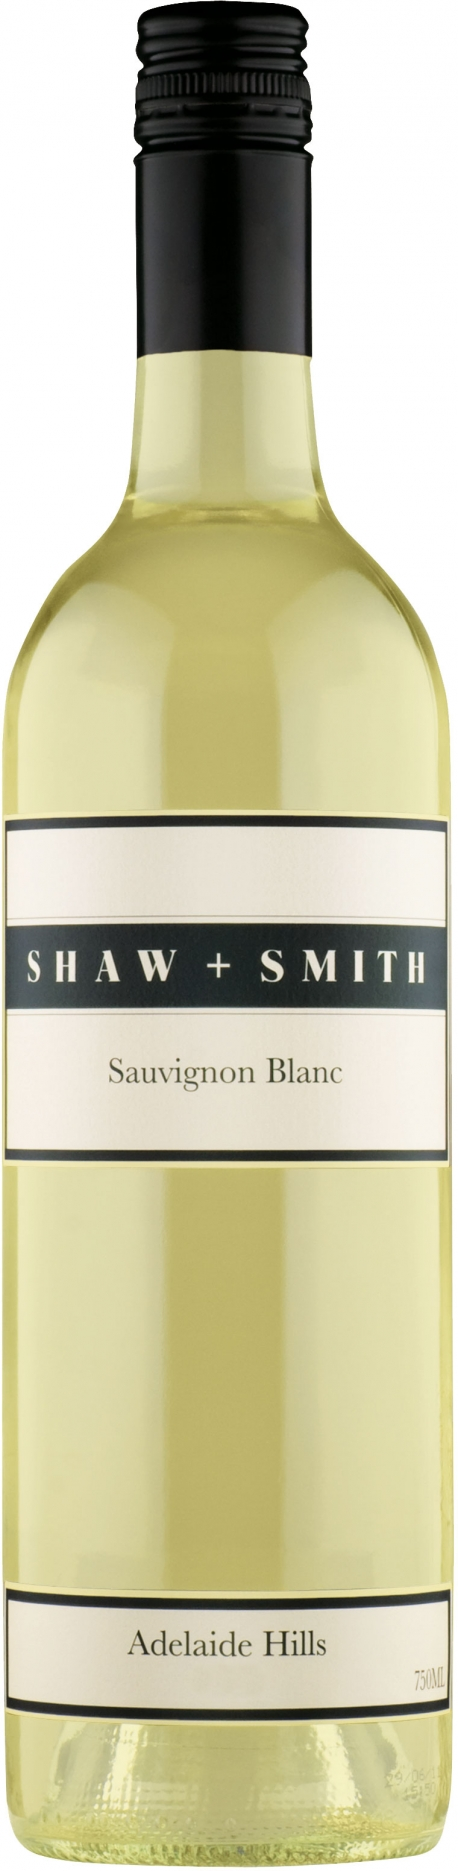 Shaw And Smith - Adelaide Hills Sauvignon Blanc 2019 (75cl Bottle)